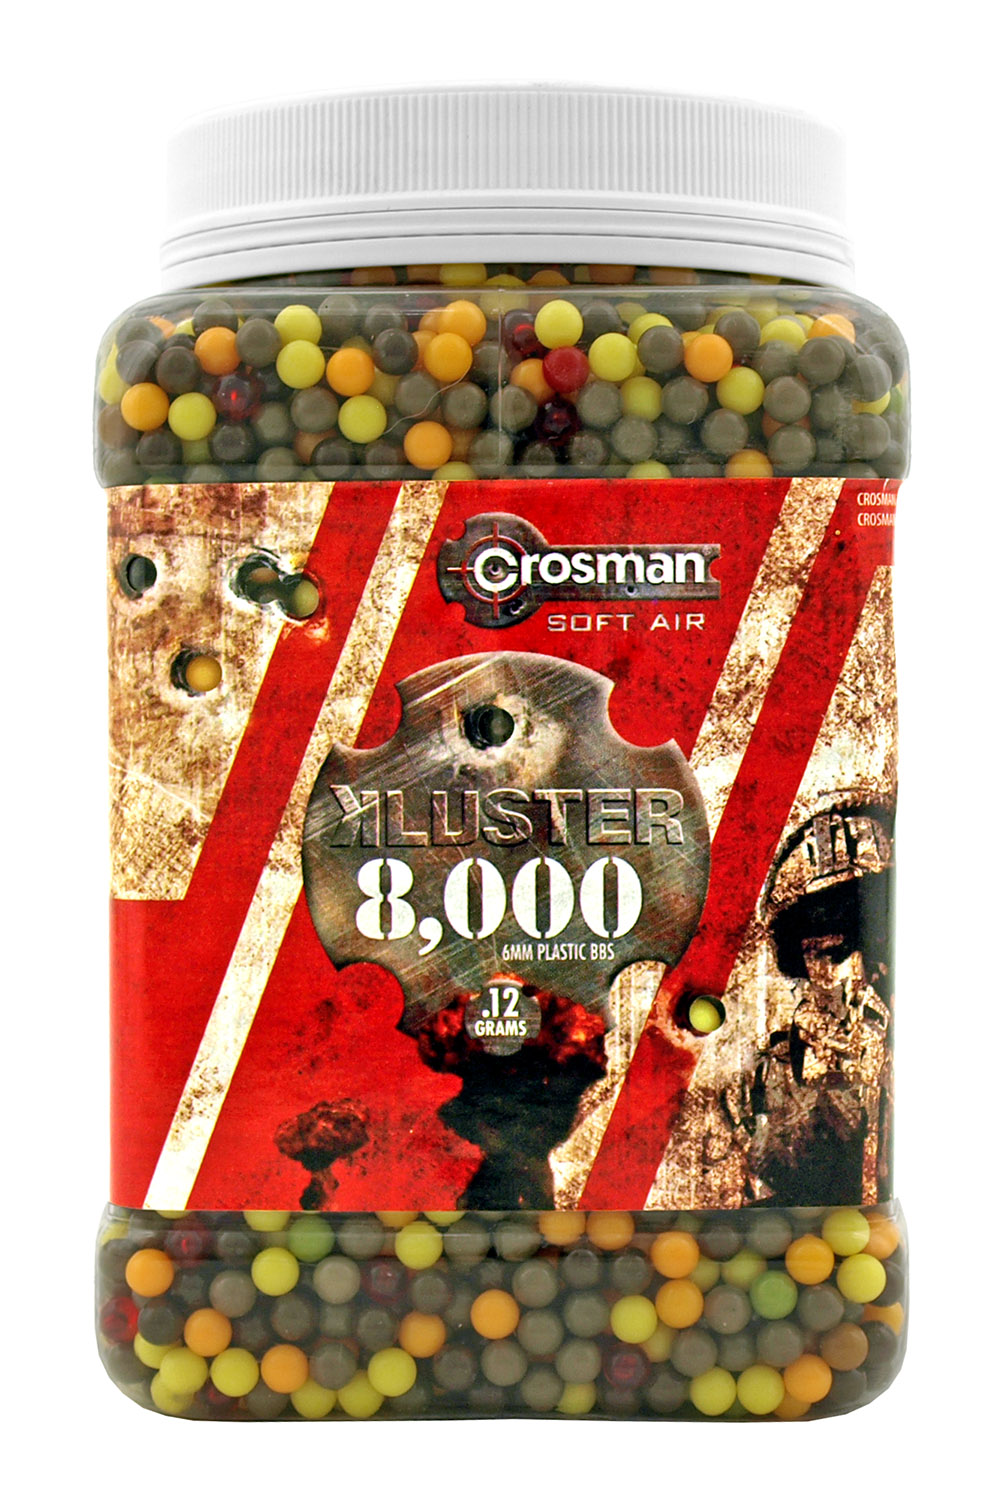 8,000 ct. Crosman .12 Gram Air Soft BB's